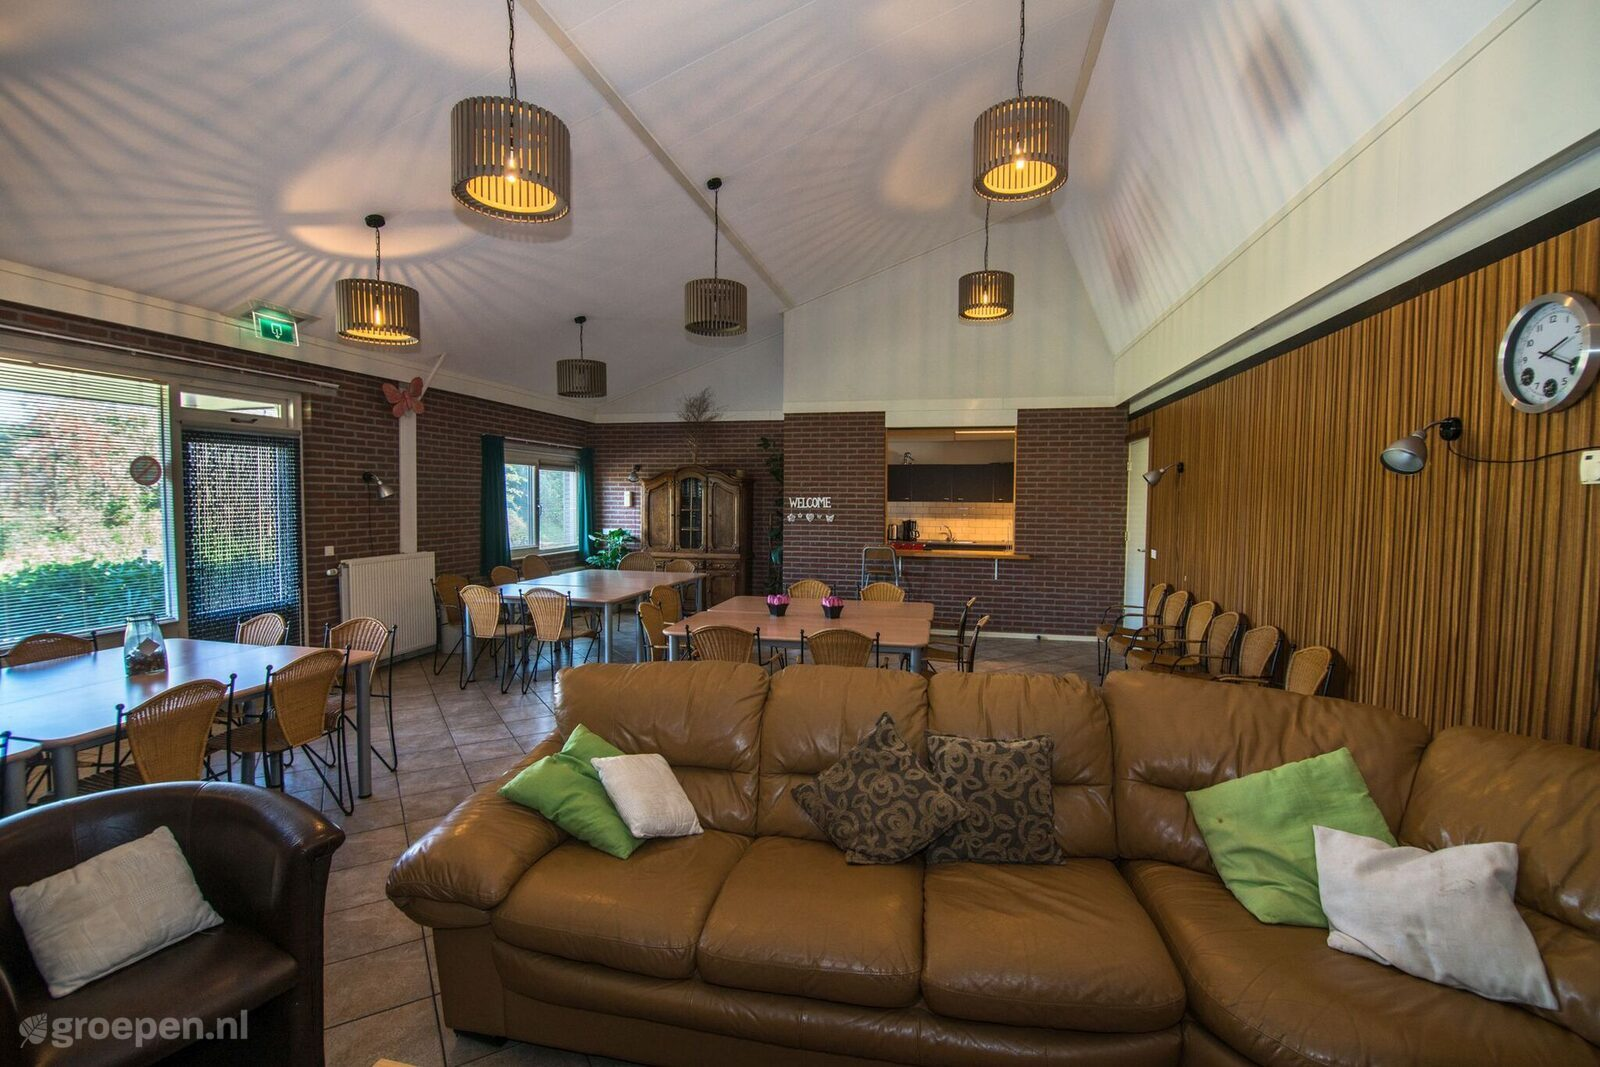 Group accommodation Den Ham